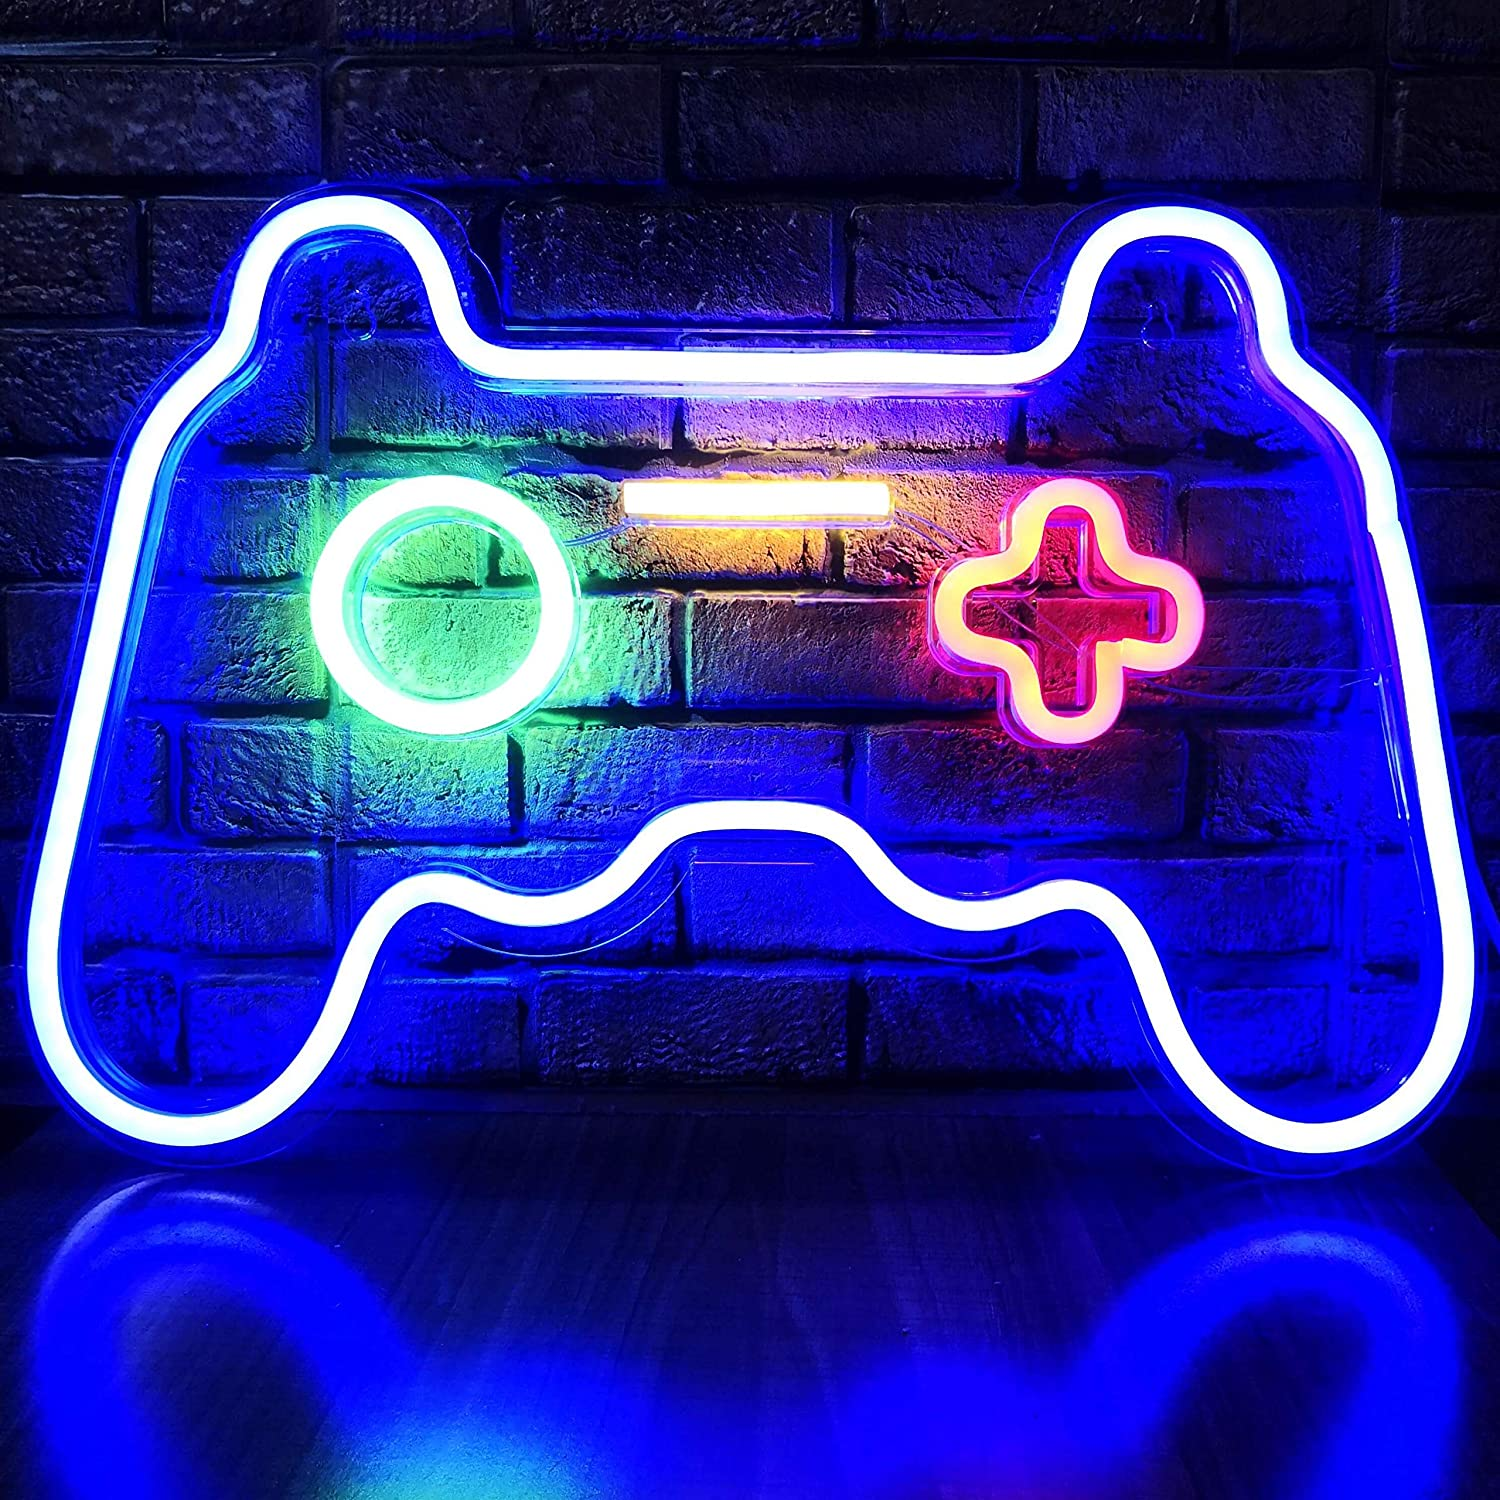 LED Game Neon Sign Gamepad Shape LED Sign Light Gamer Gift for Teen Boys Game Room Decor Bedroom Wall Gaming Wall Decoration Playstation Light Up Signs Accessories Video Game Wall Art